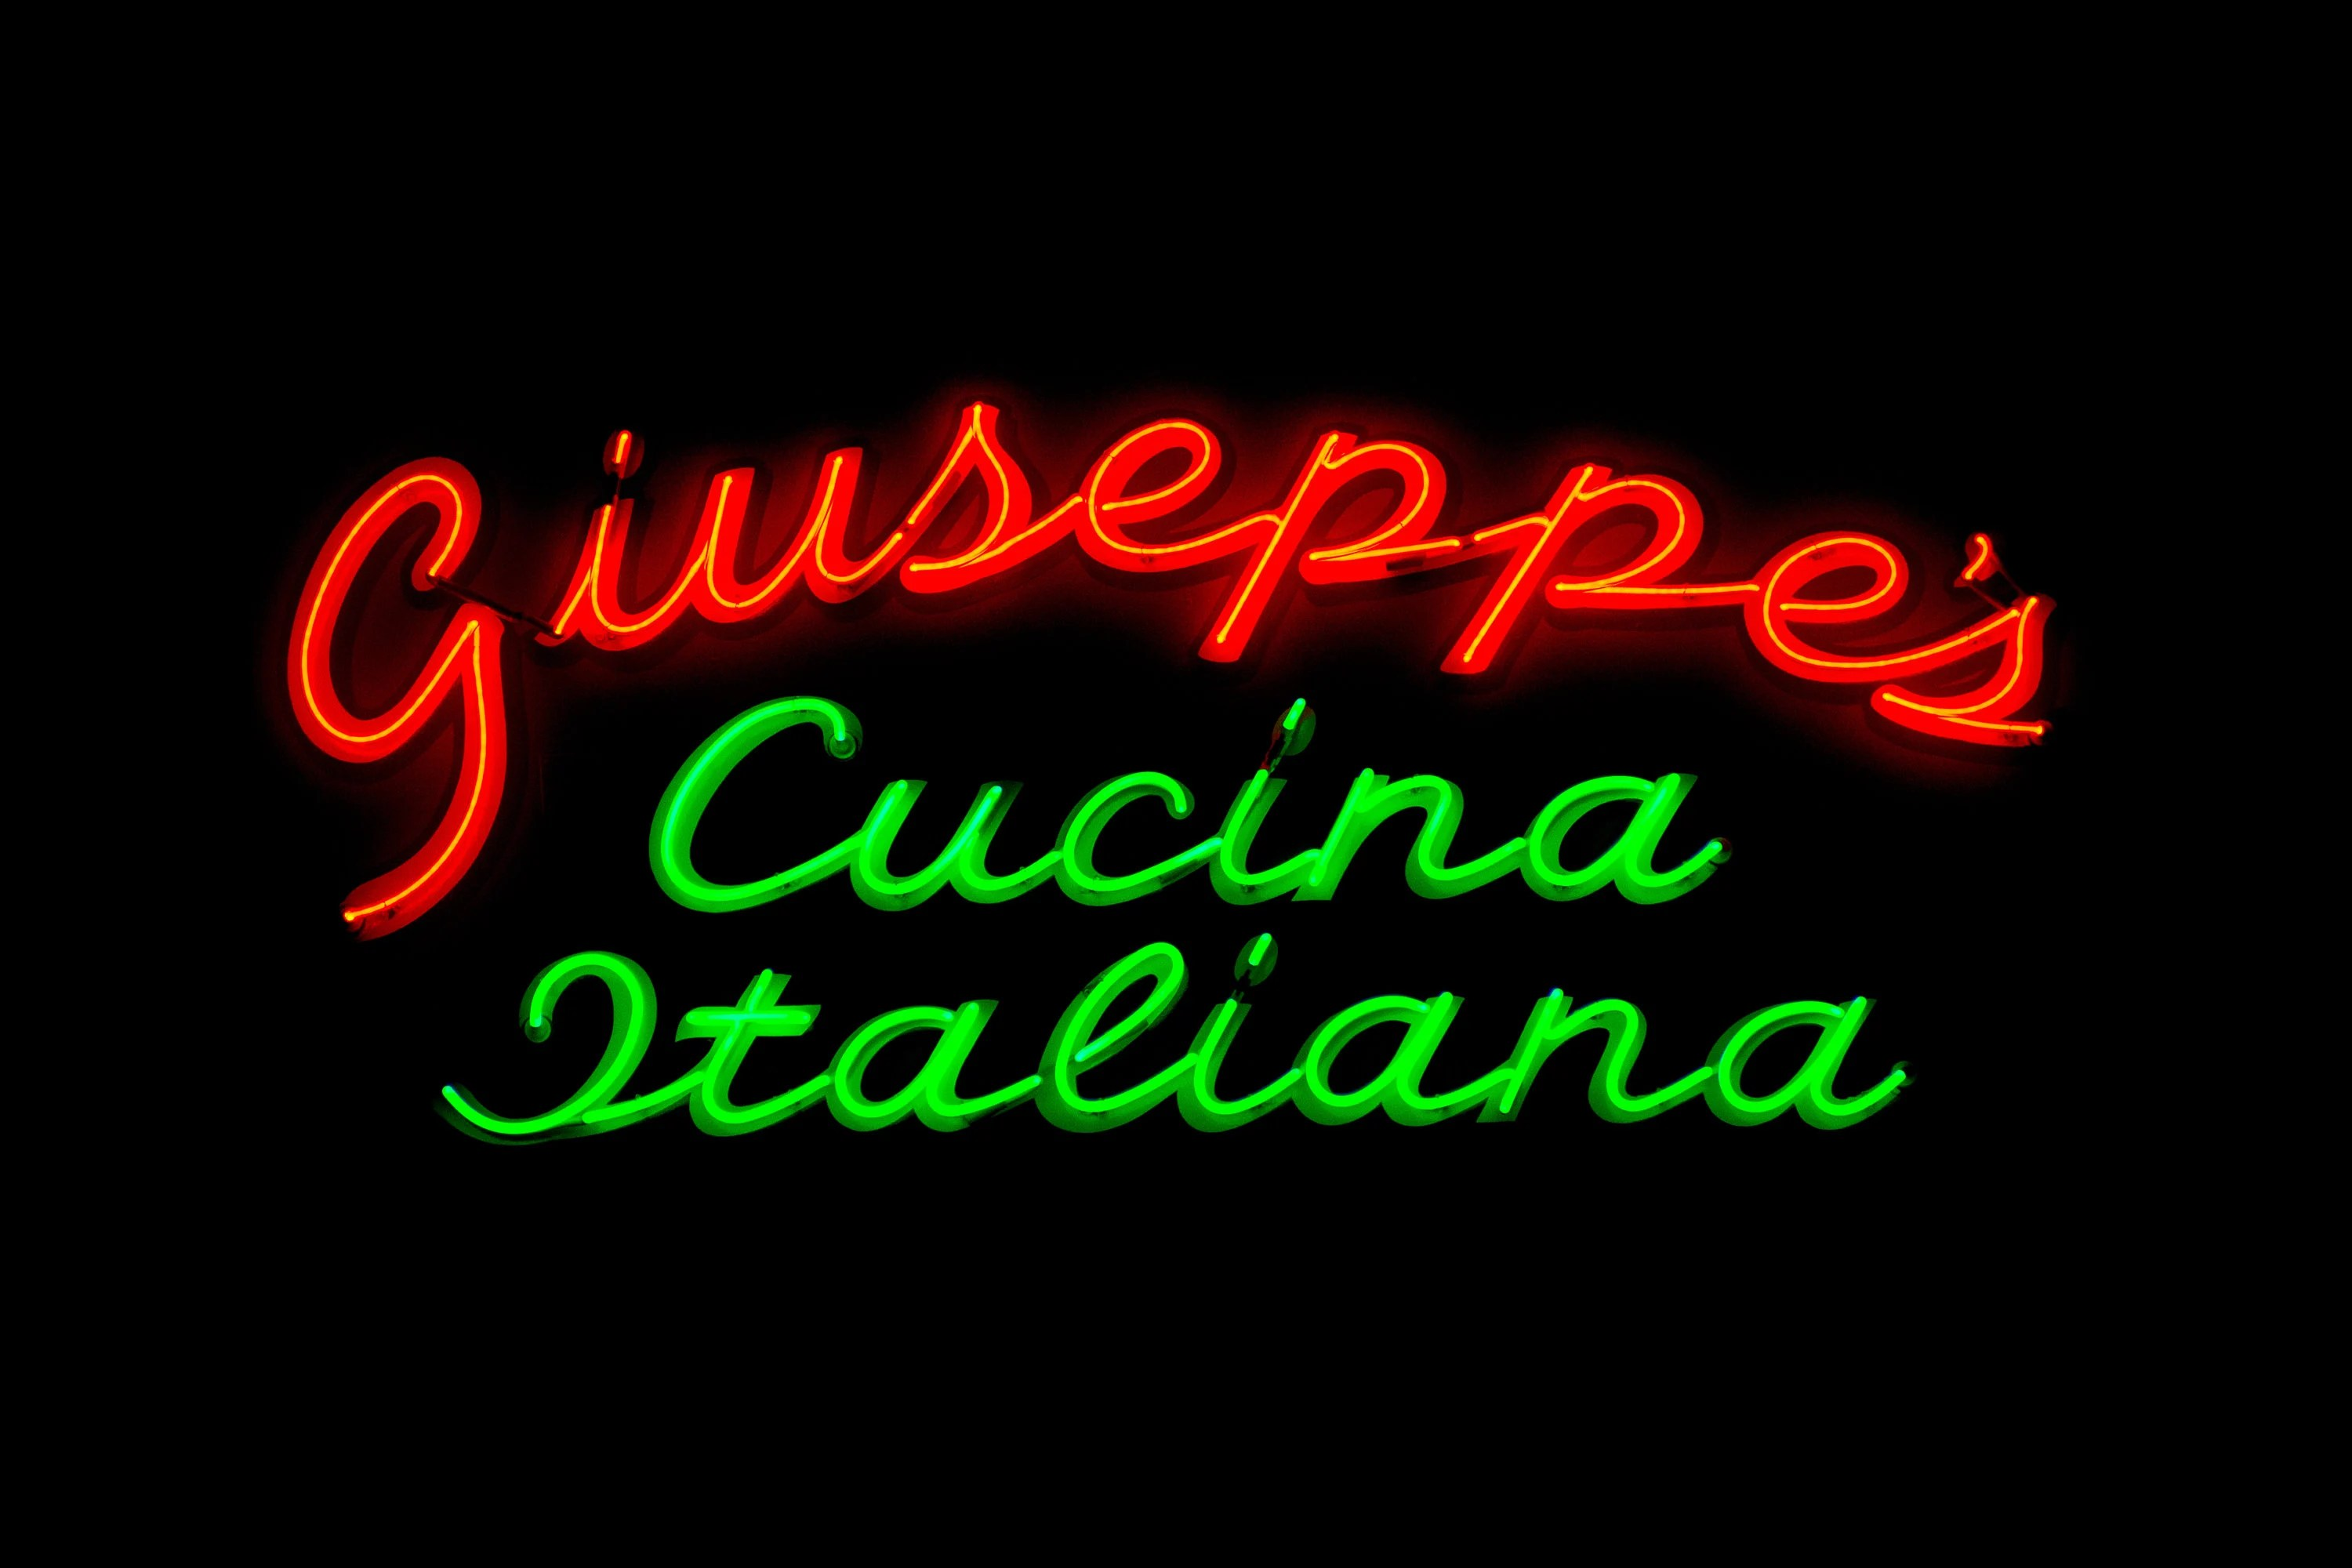 Neon Cucina Giuseppe S Italian Restaurant Print Art Print Gift Kitchen Sign Home Decor Wall Artwork Neon Printable Digital Download Quote